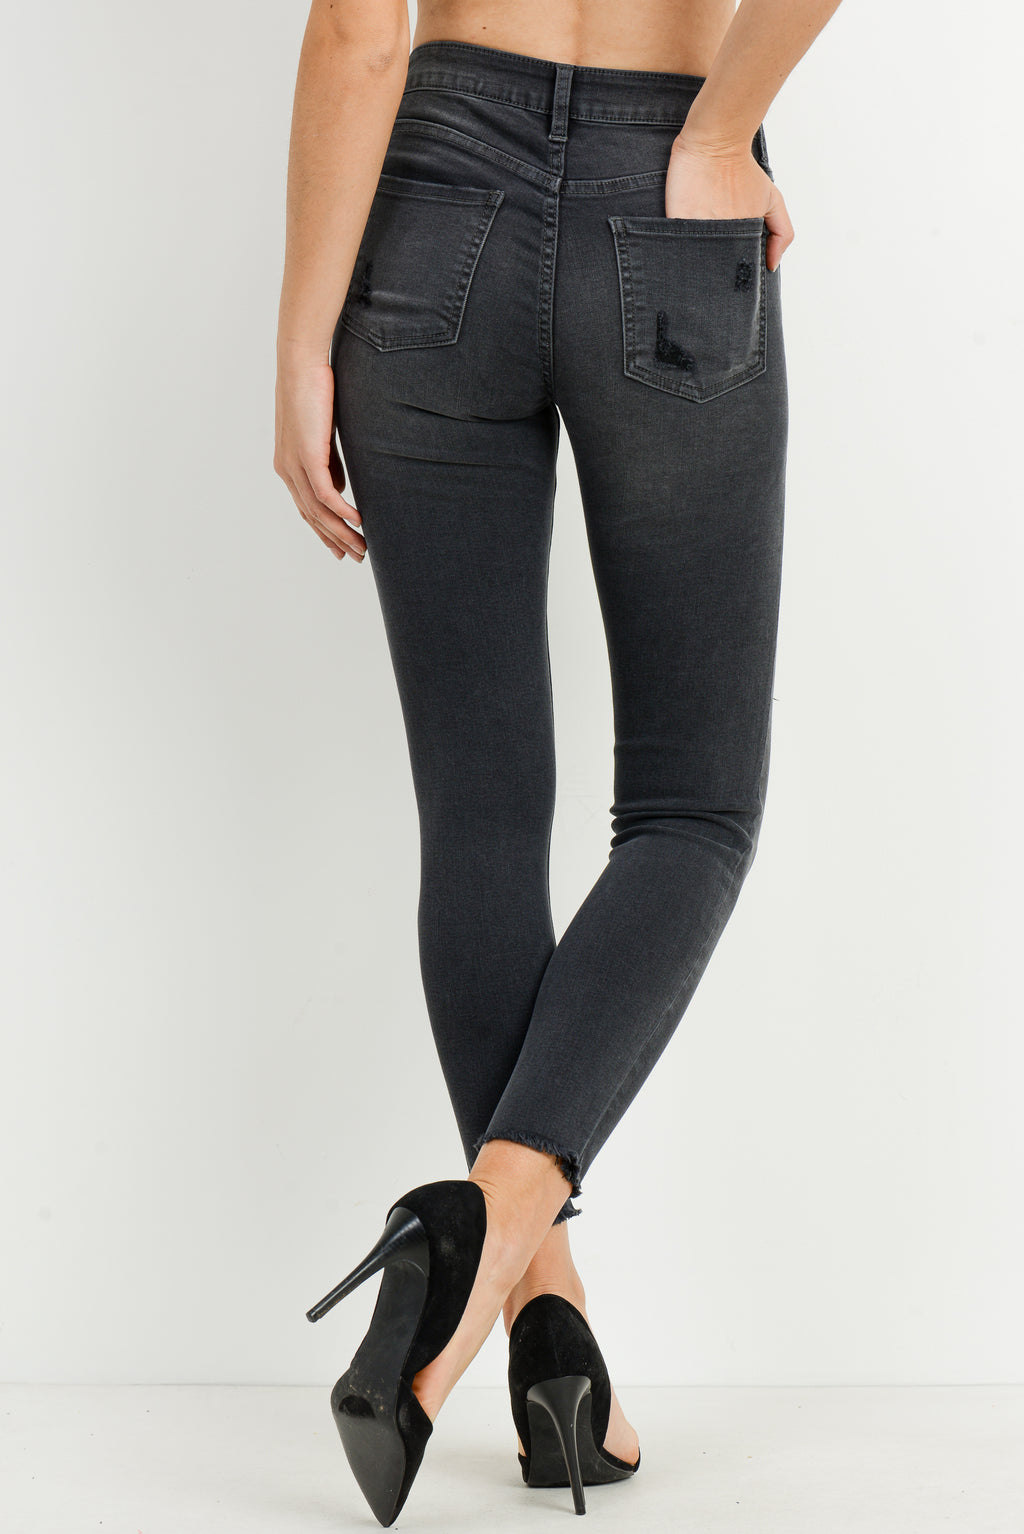 LAST CALL SIZE 31 | Washed Black Skinny Jeans with Contrast Black Distressing